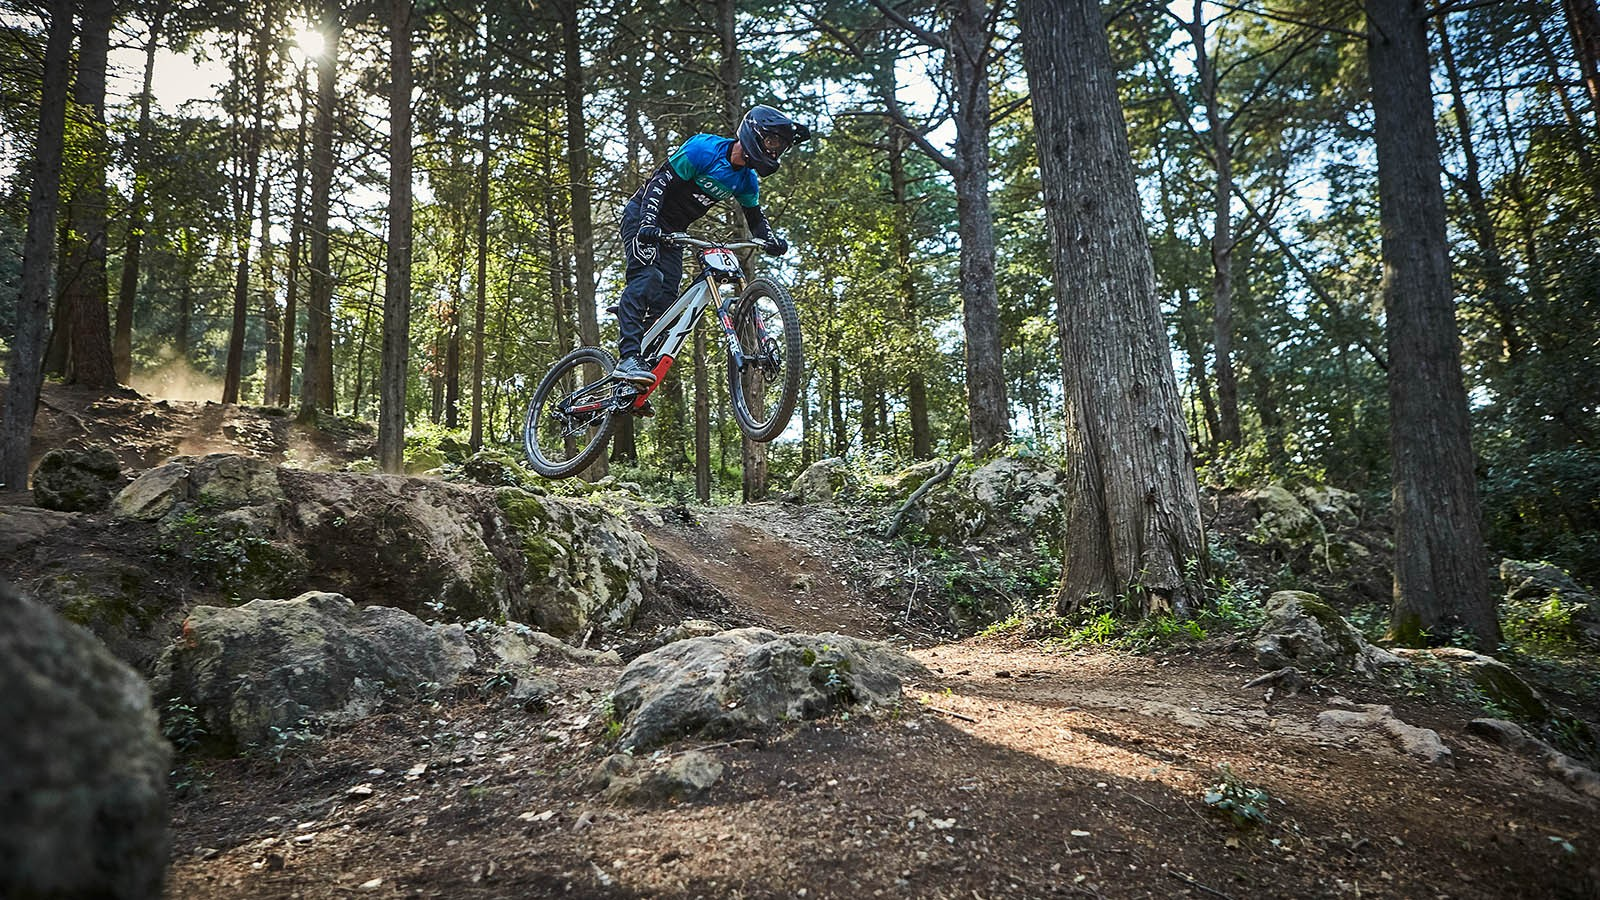 Our man Rob sending one of the many gaps to feature on the UCI World Cup track from round 1 in Losinj, Croatia